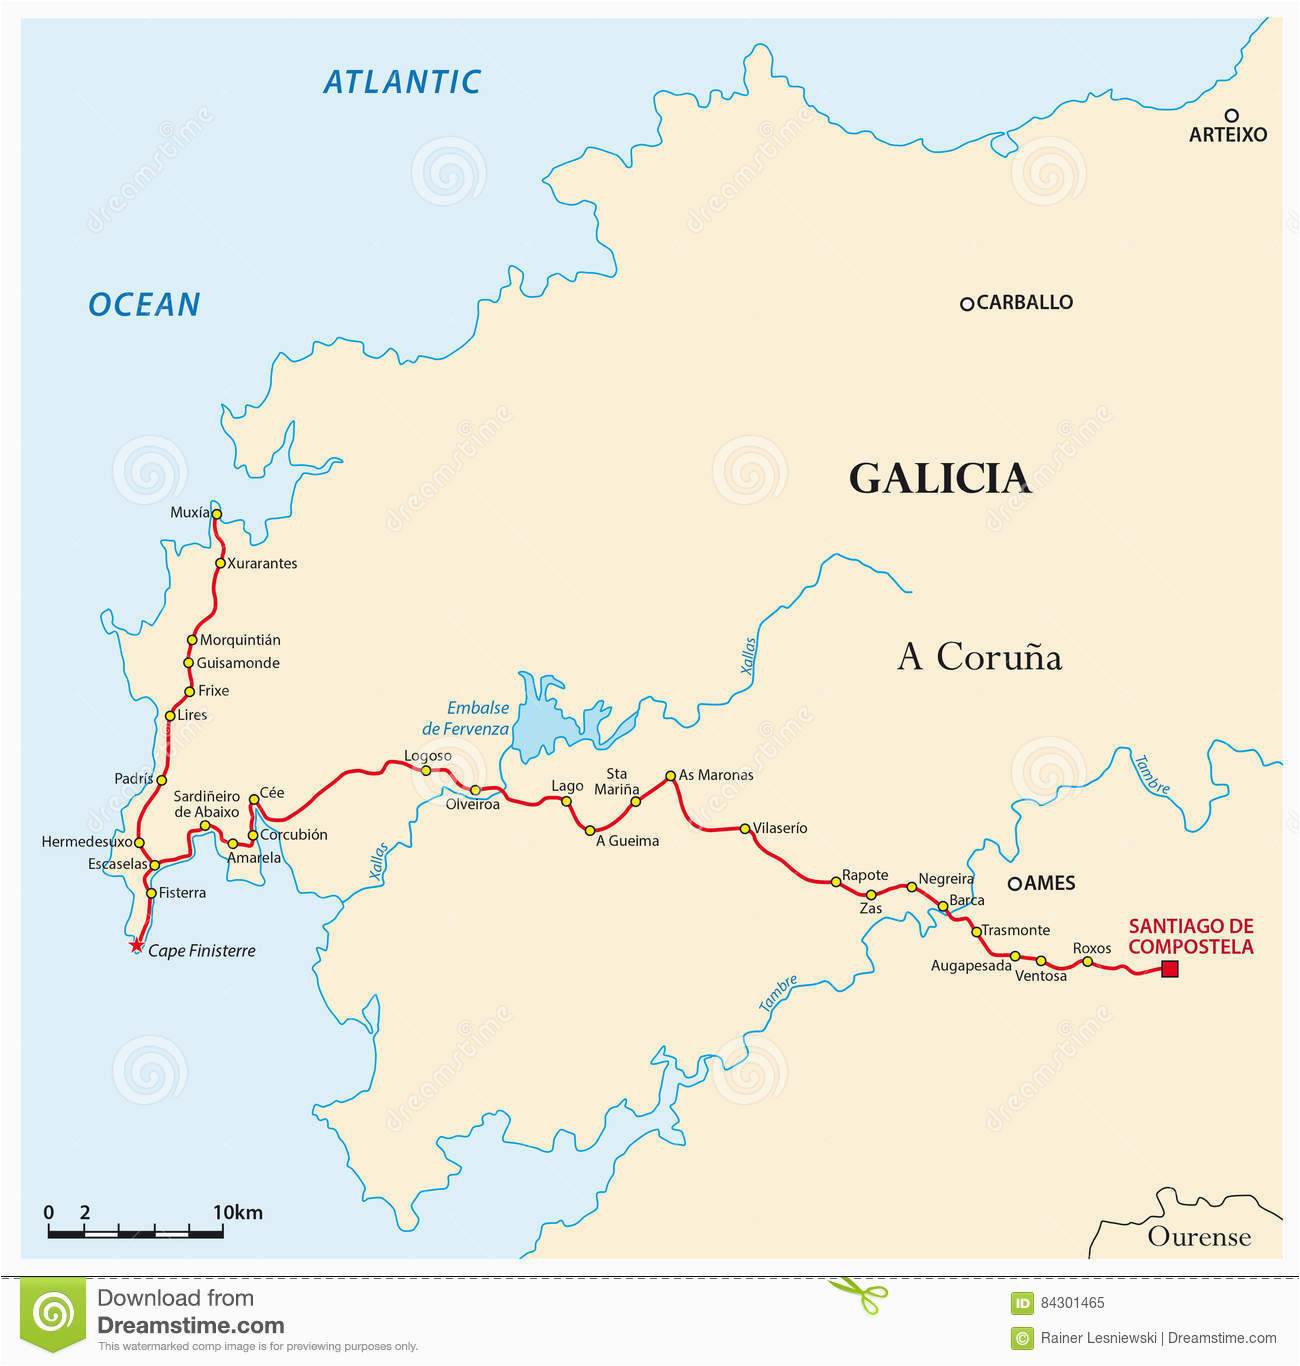 map way of st james from santiago de compostela to cape